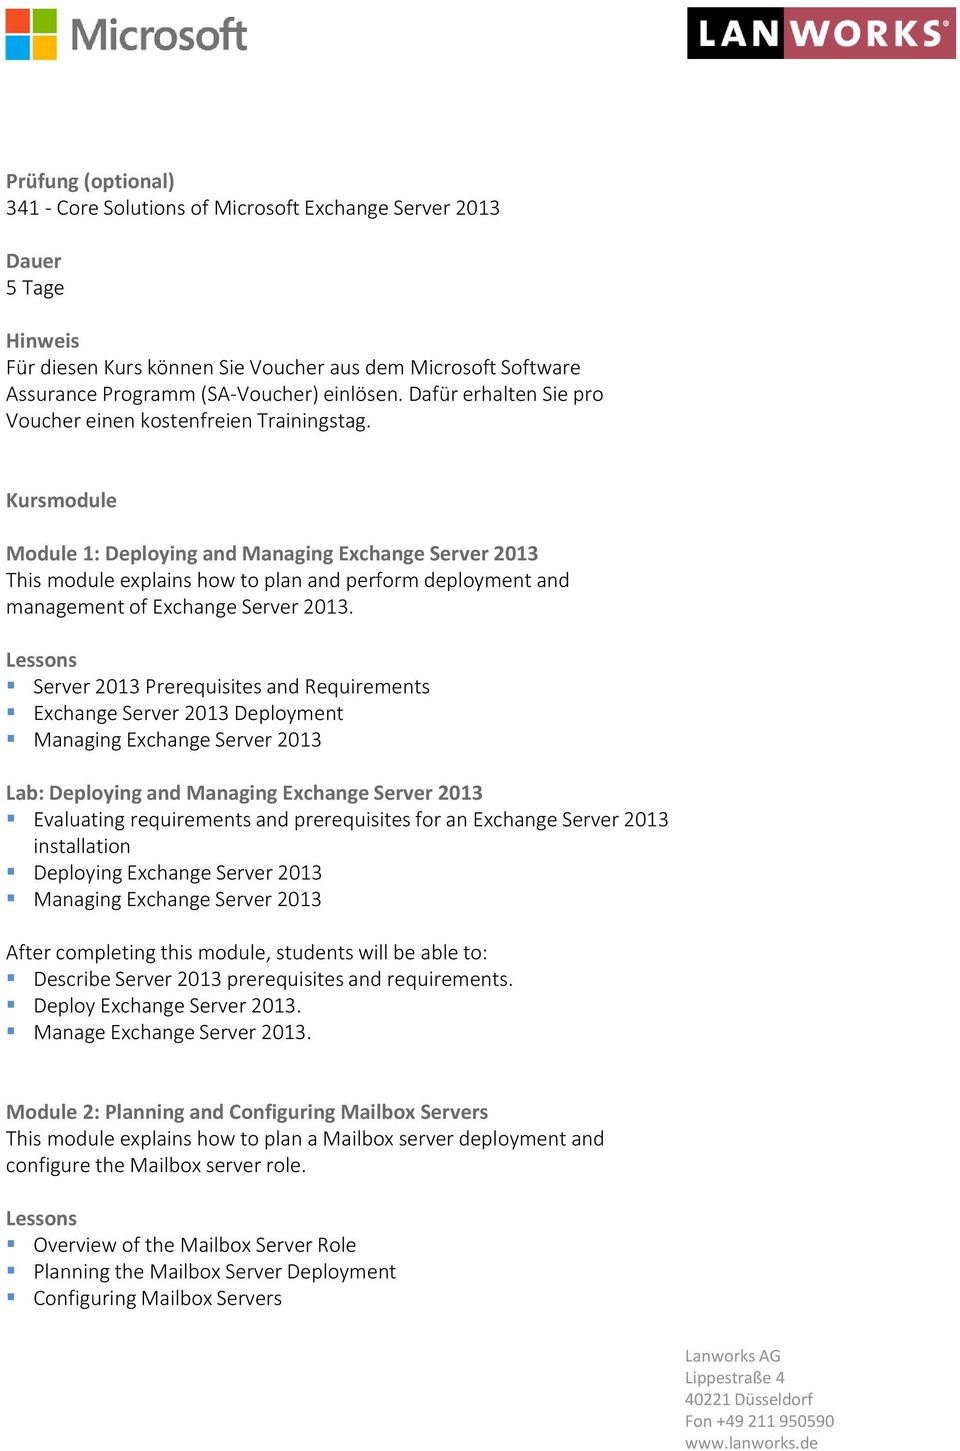 Kursmodule Module 1: Deploying and Managing Exchange Server 2013 This module explains how to plan and perform deployment and management of Exchange Server 2013.